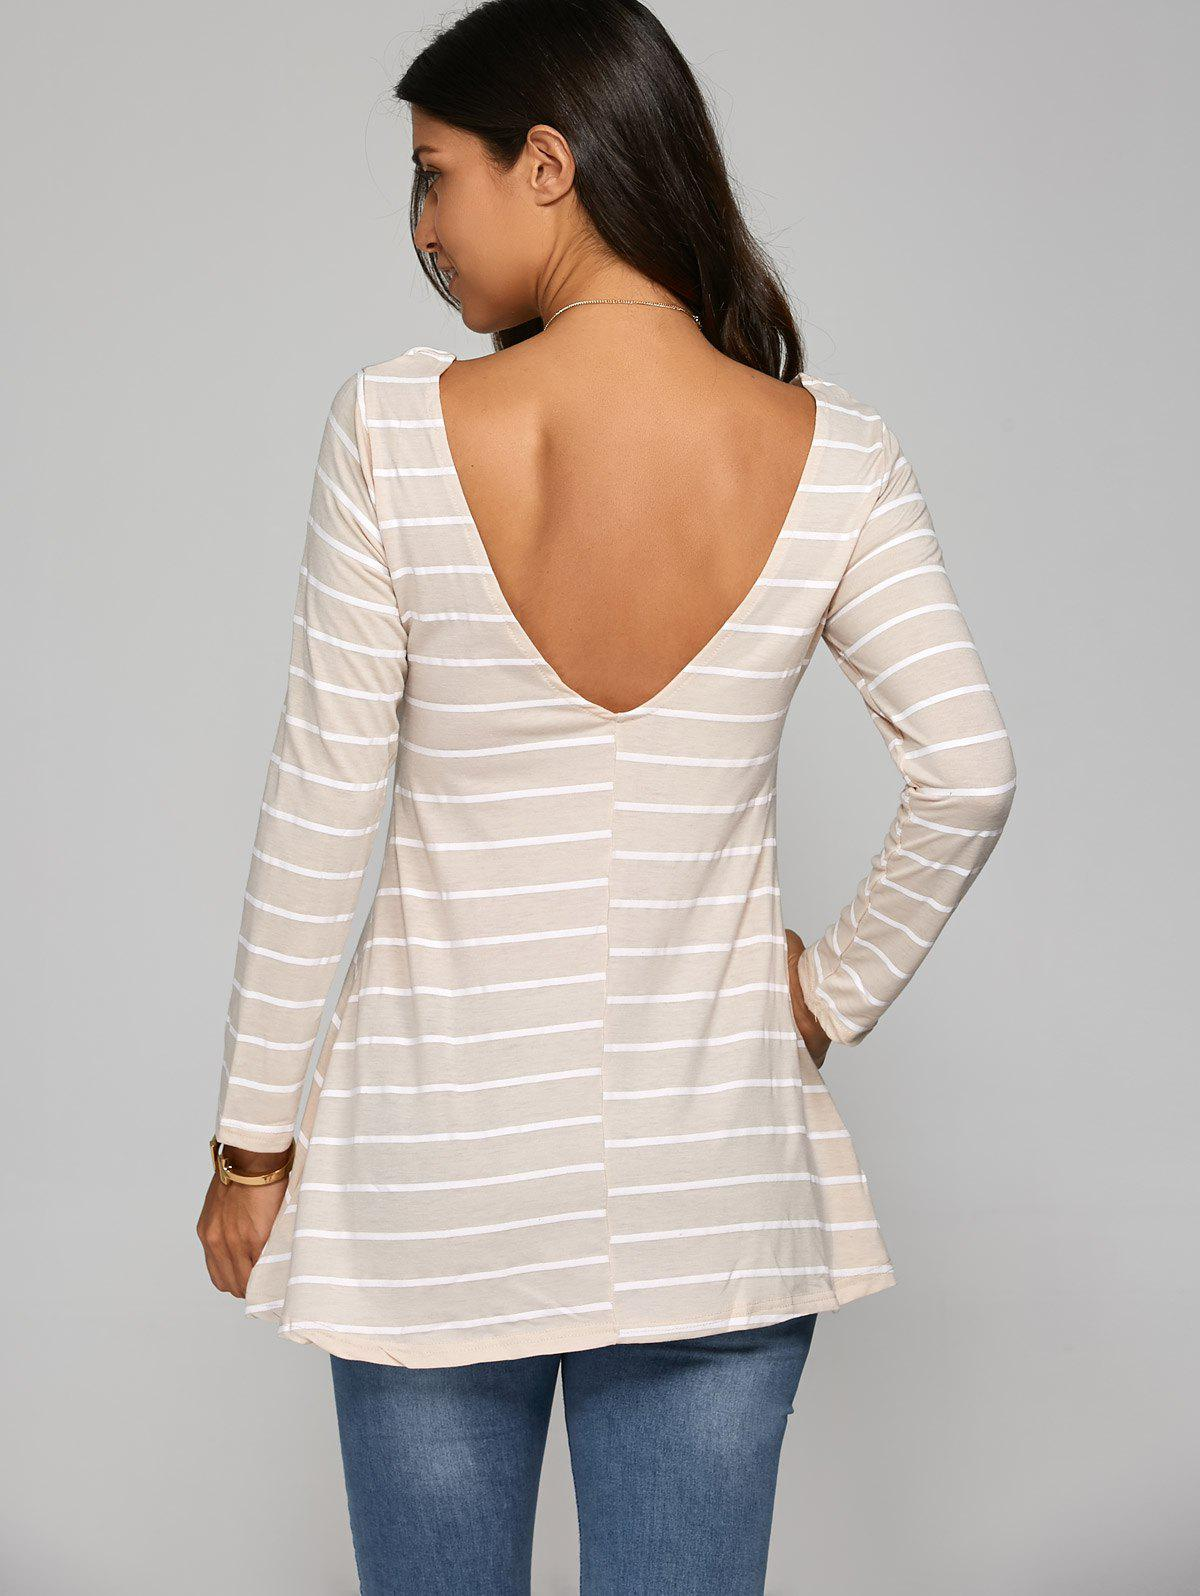 Striped Open Back T-Shirt lacywear s 81 fio